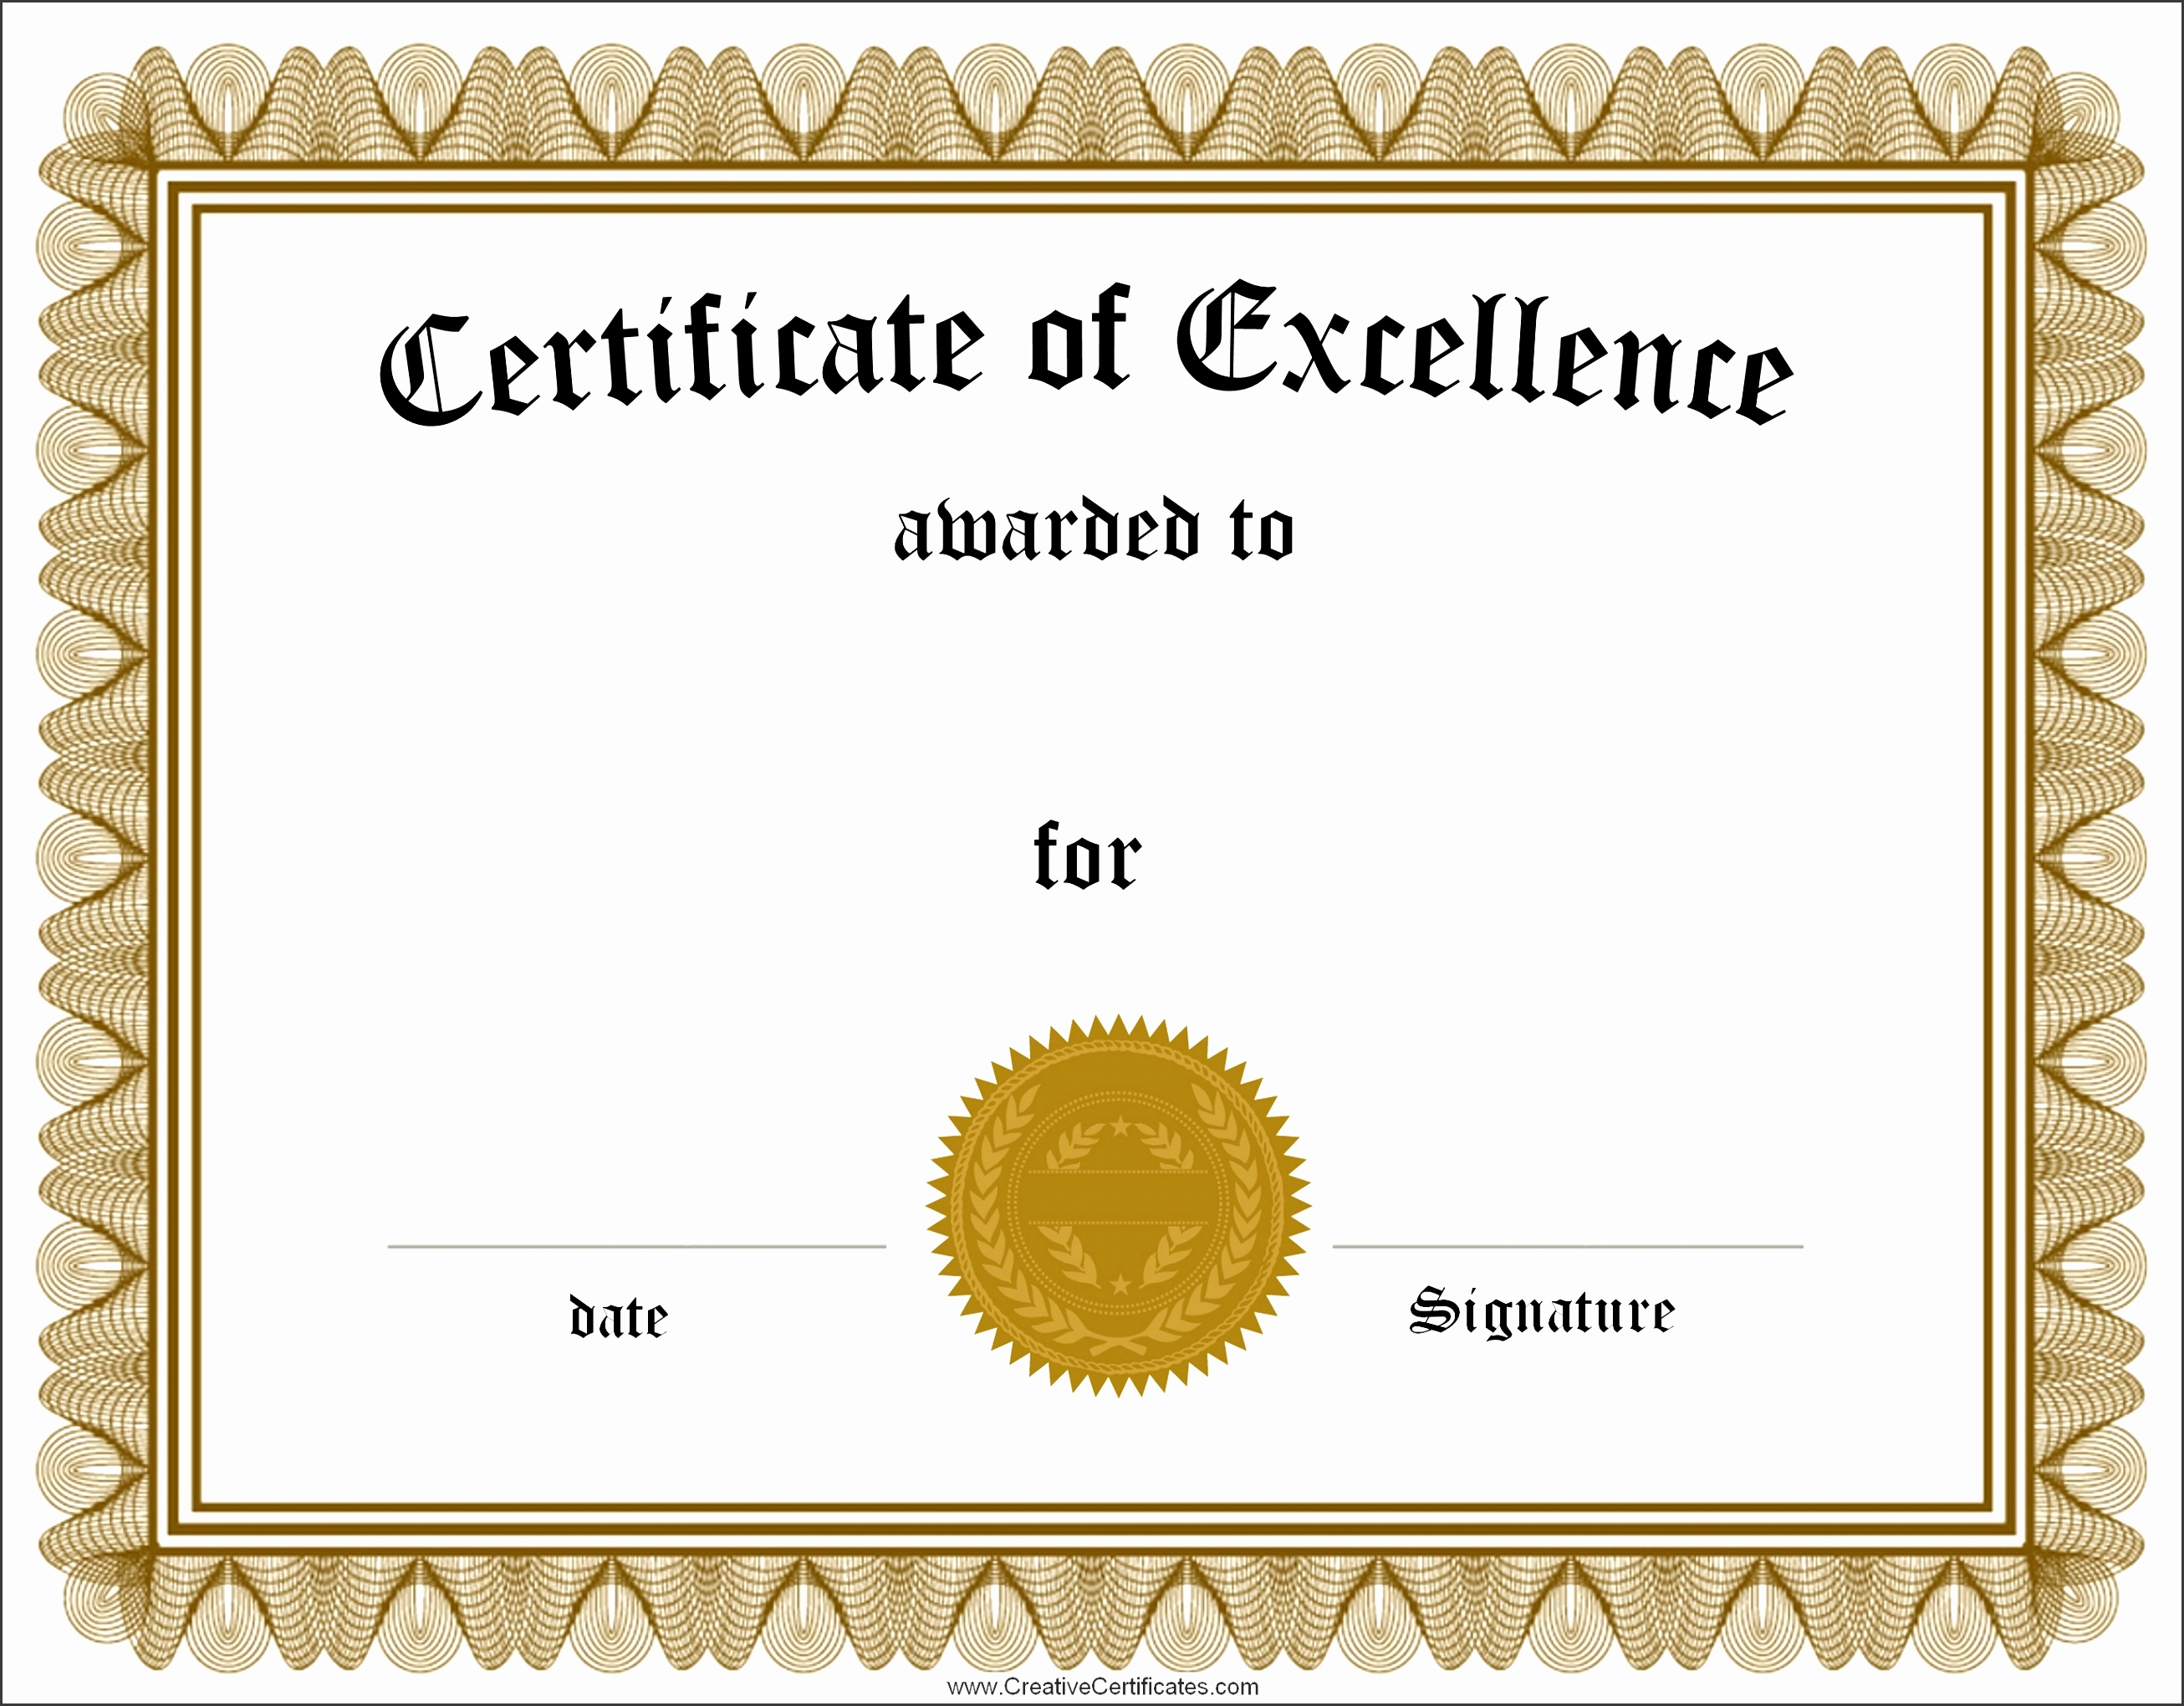 10 printable certificate template sampletemplatess sampletemplatess free certificate template editable certificate template certificate templates free certificate of achievement alramifo Image collections